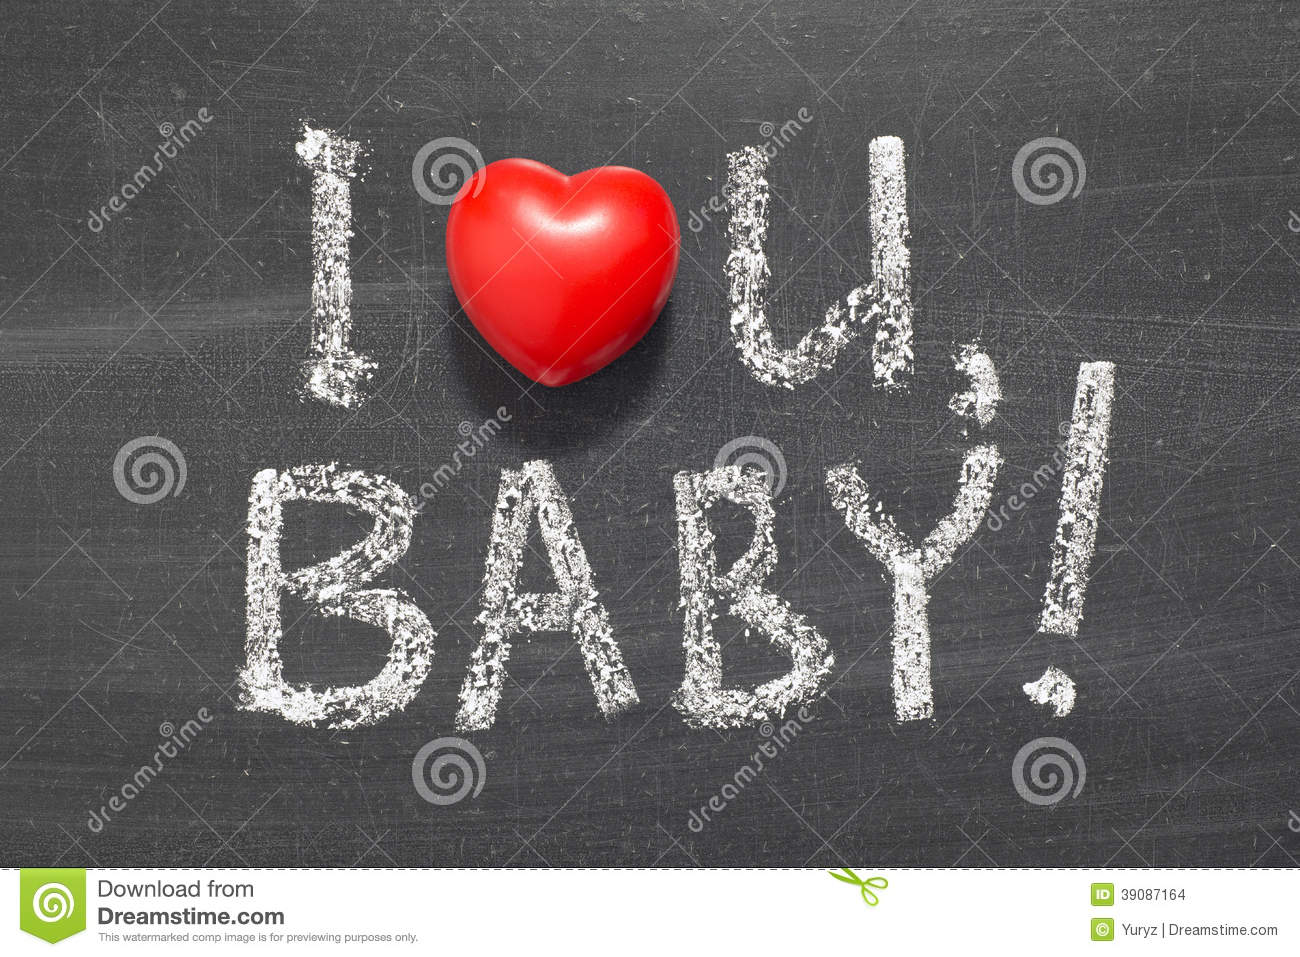 Love You Baby Stock Photo Image Of Symbol Relation 39087164